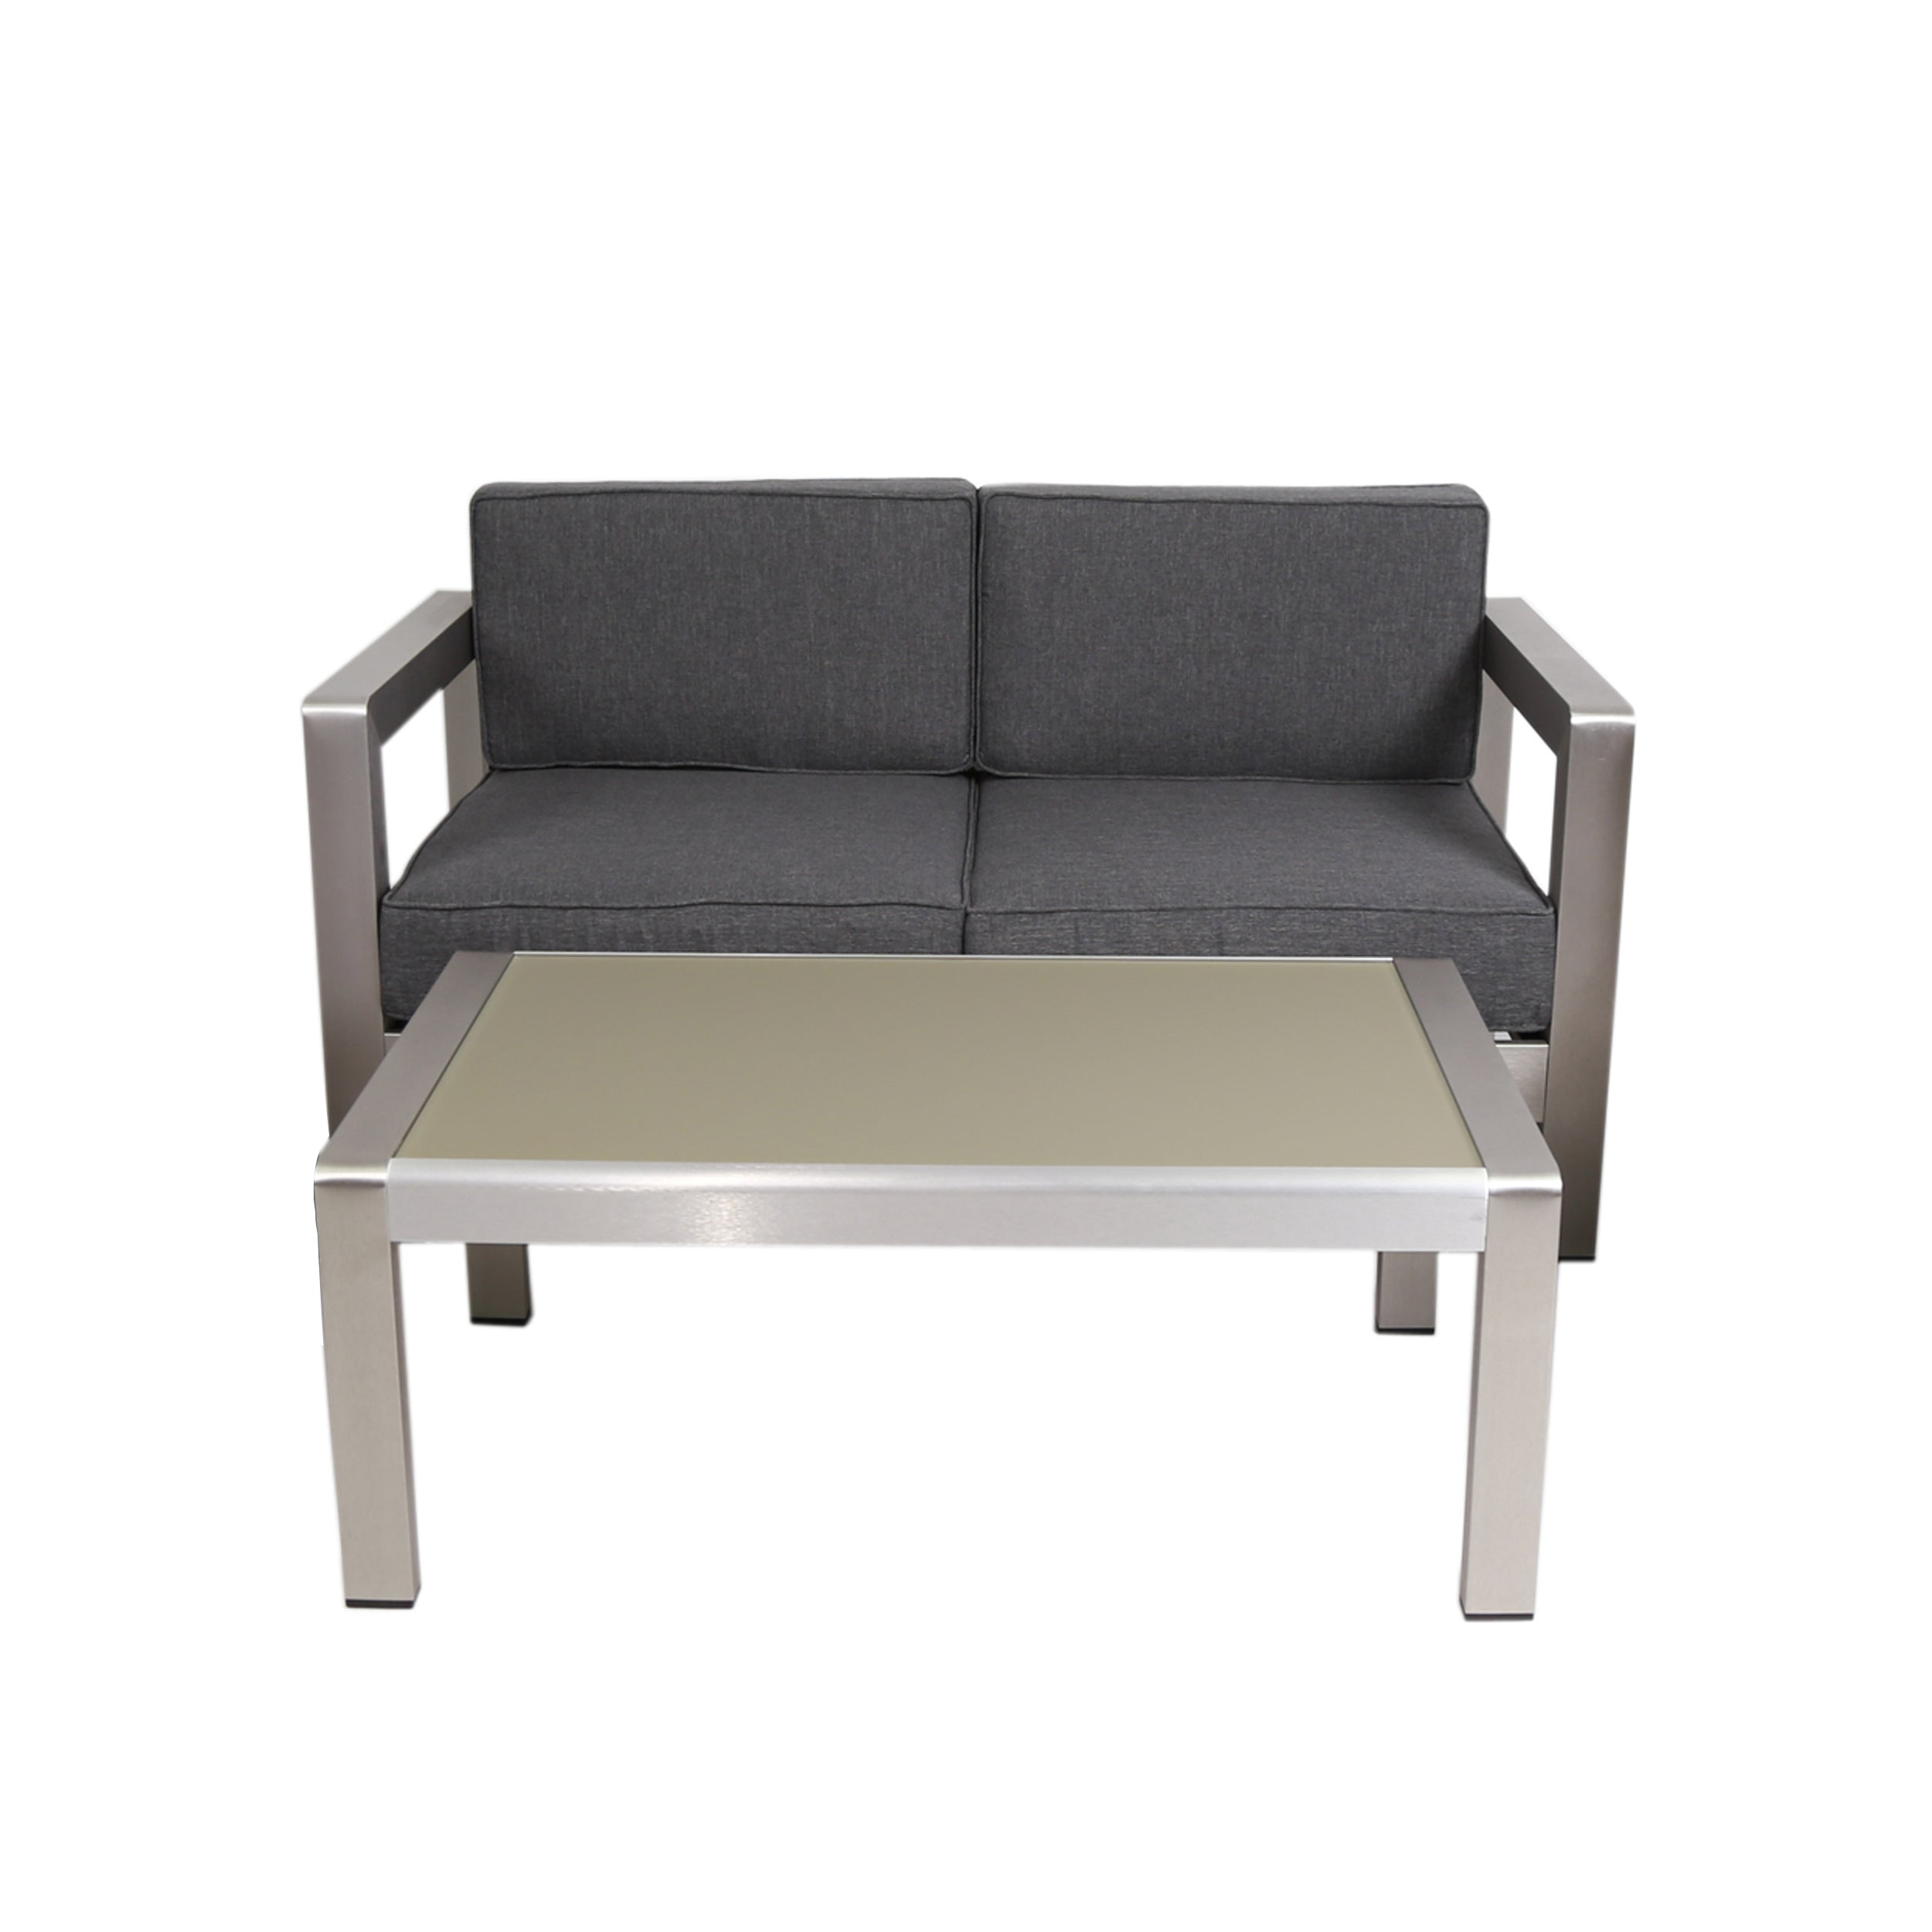 Alec Outdoor Aluminum Loveseat and Tempered Glass Topped Coffee Table Silver and Gray